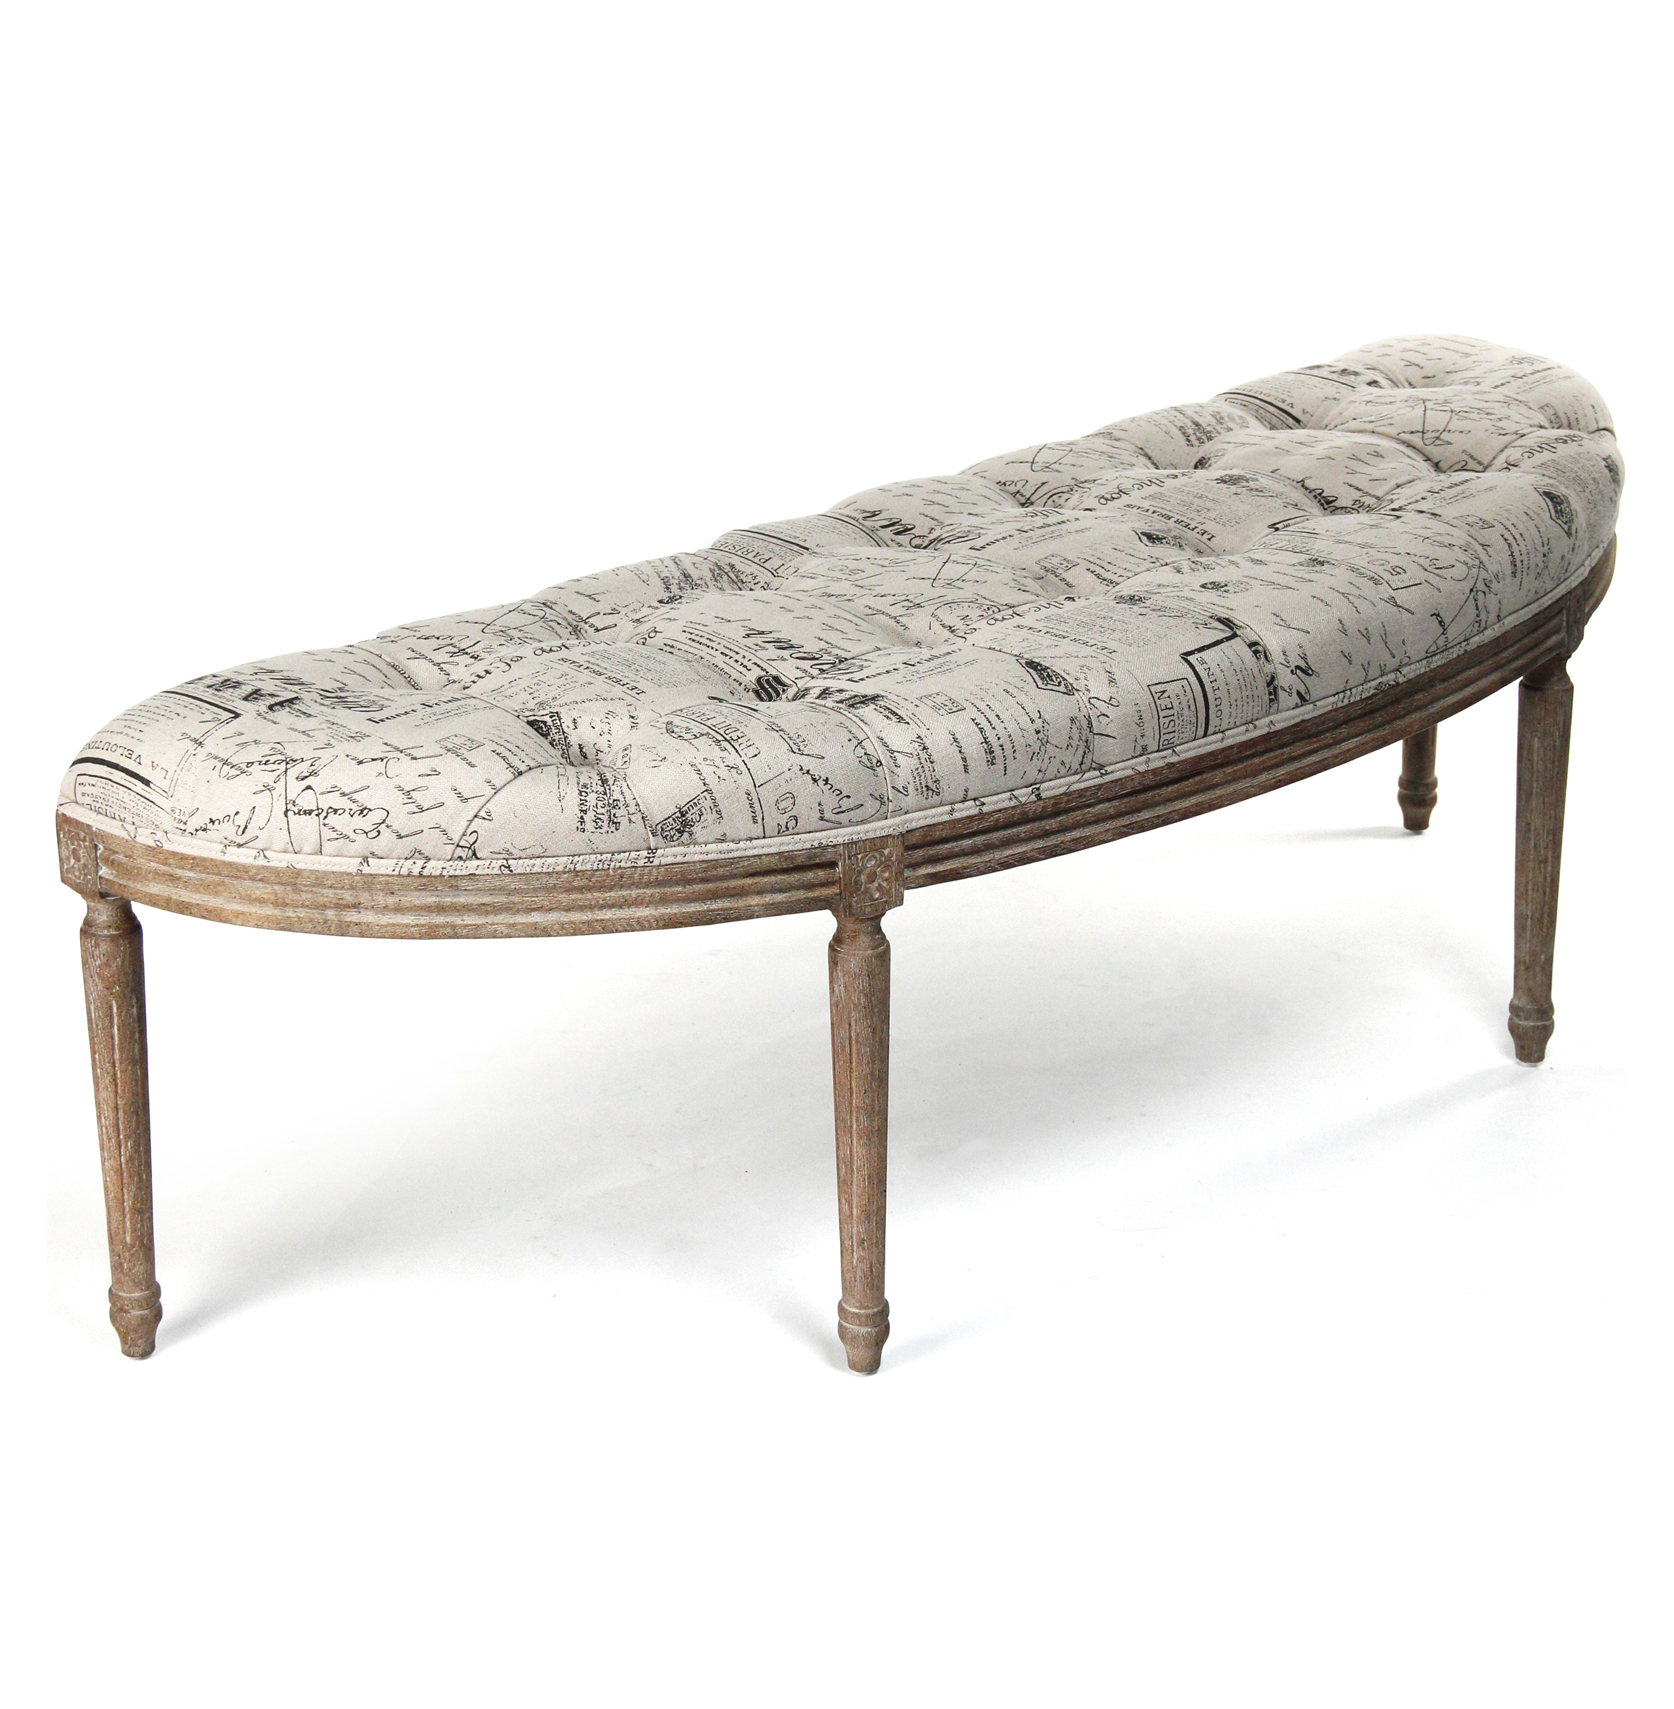 French Country Louis XVI Curved Script Linen Vanity Hallway Bench